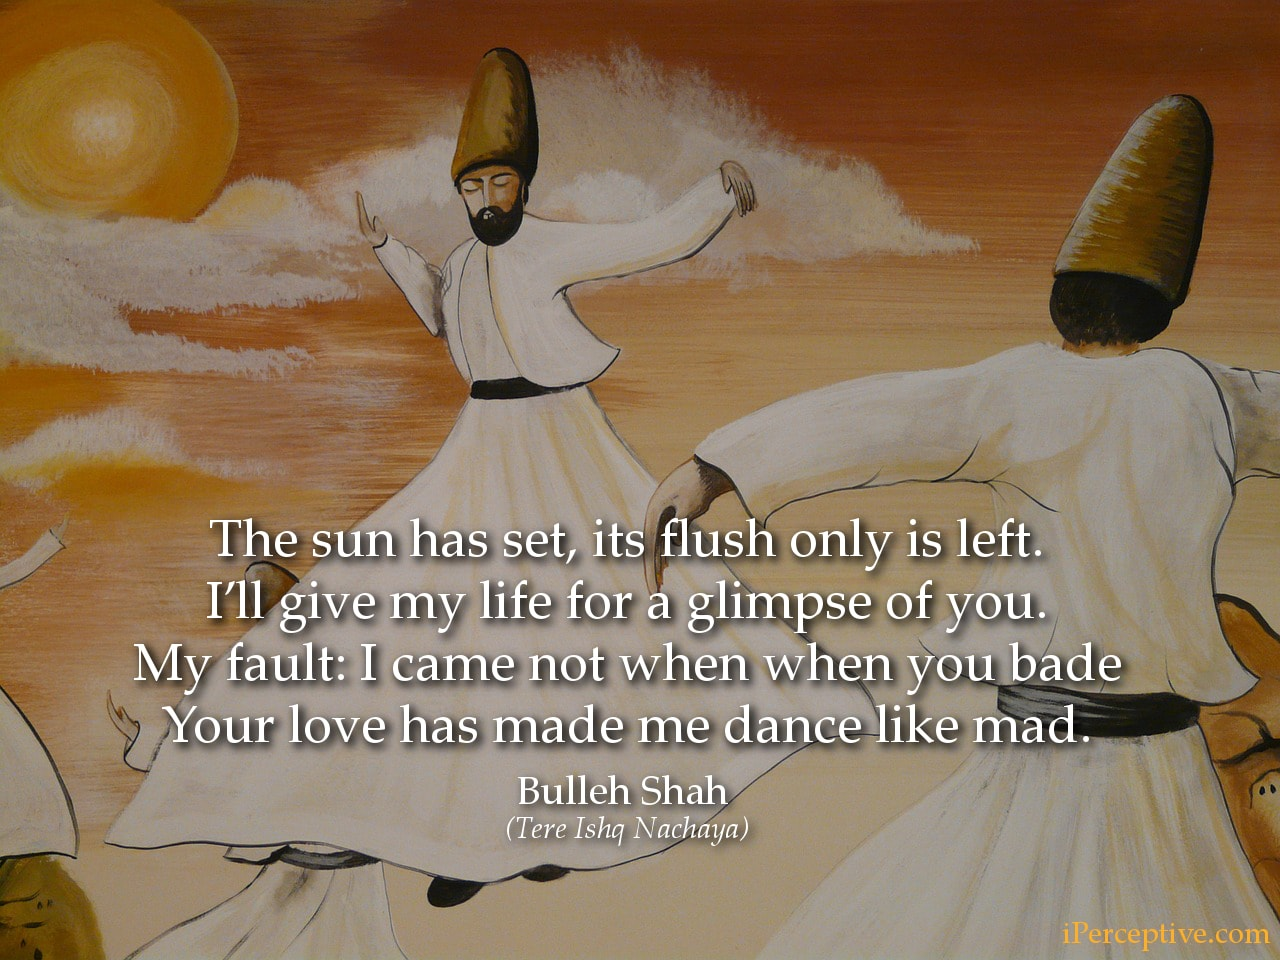 Bulleh Shah Sufi Quote: The sun has set, its flush only is left....